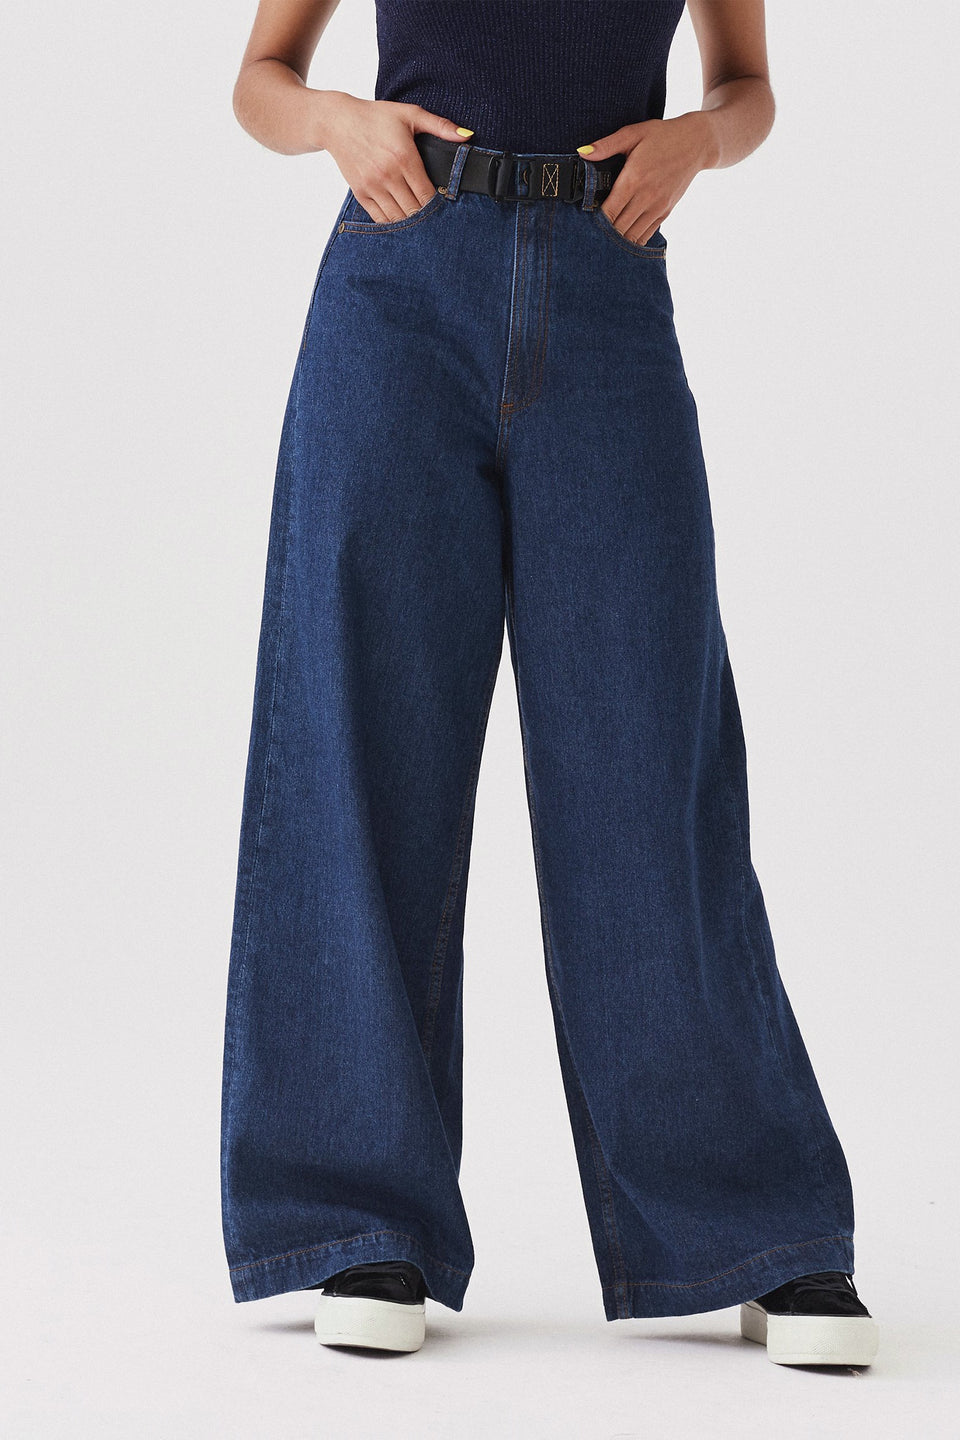 Rainbow Bum Jeans - Blue